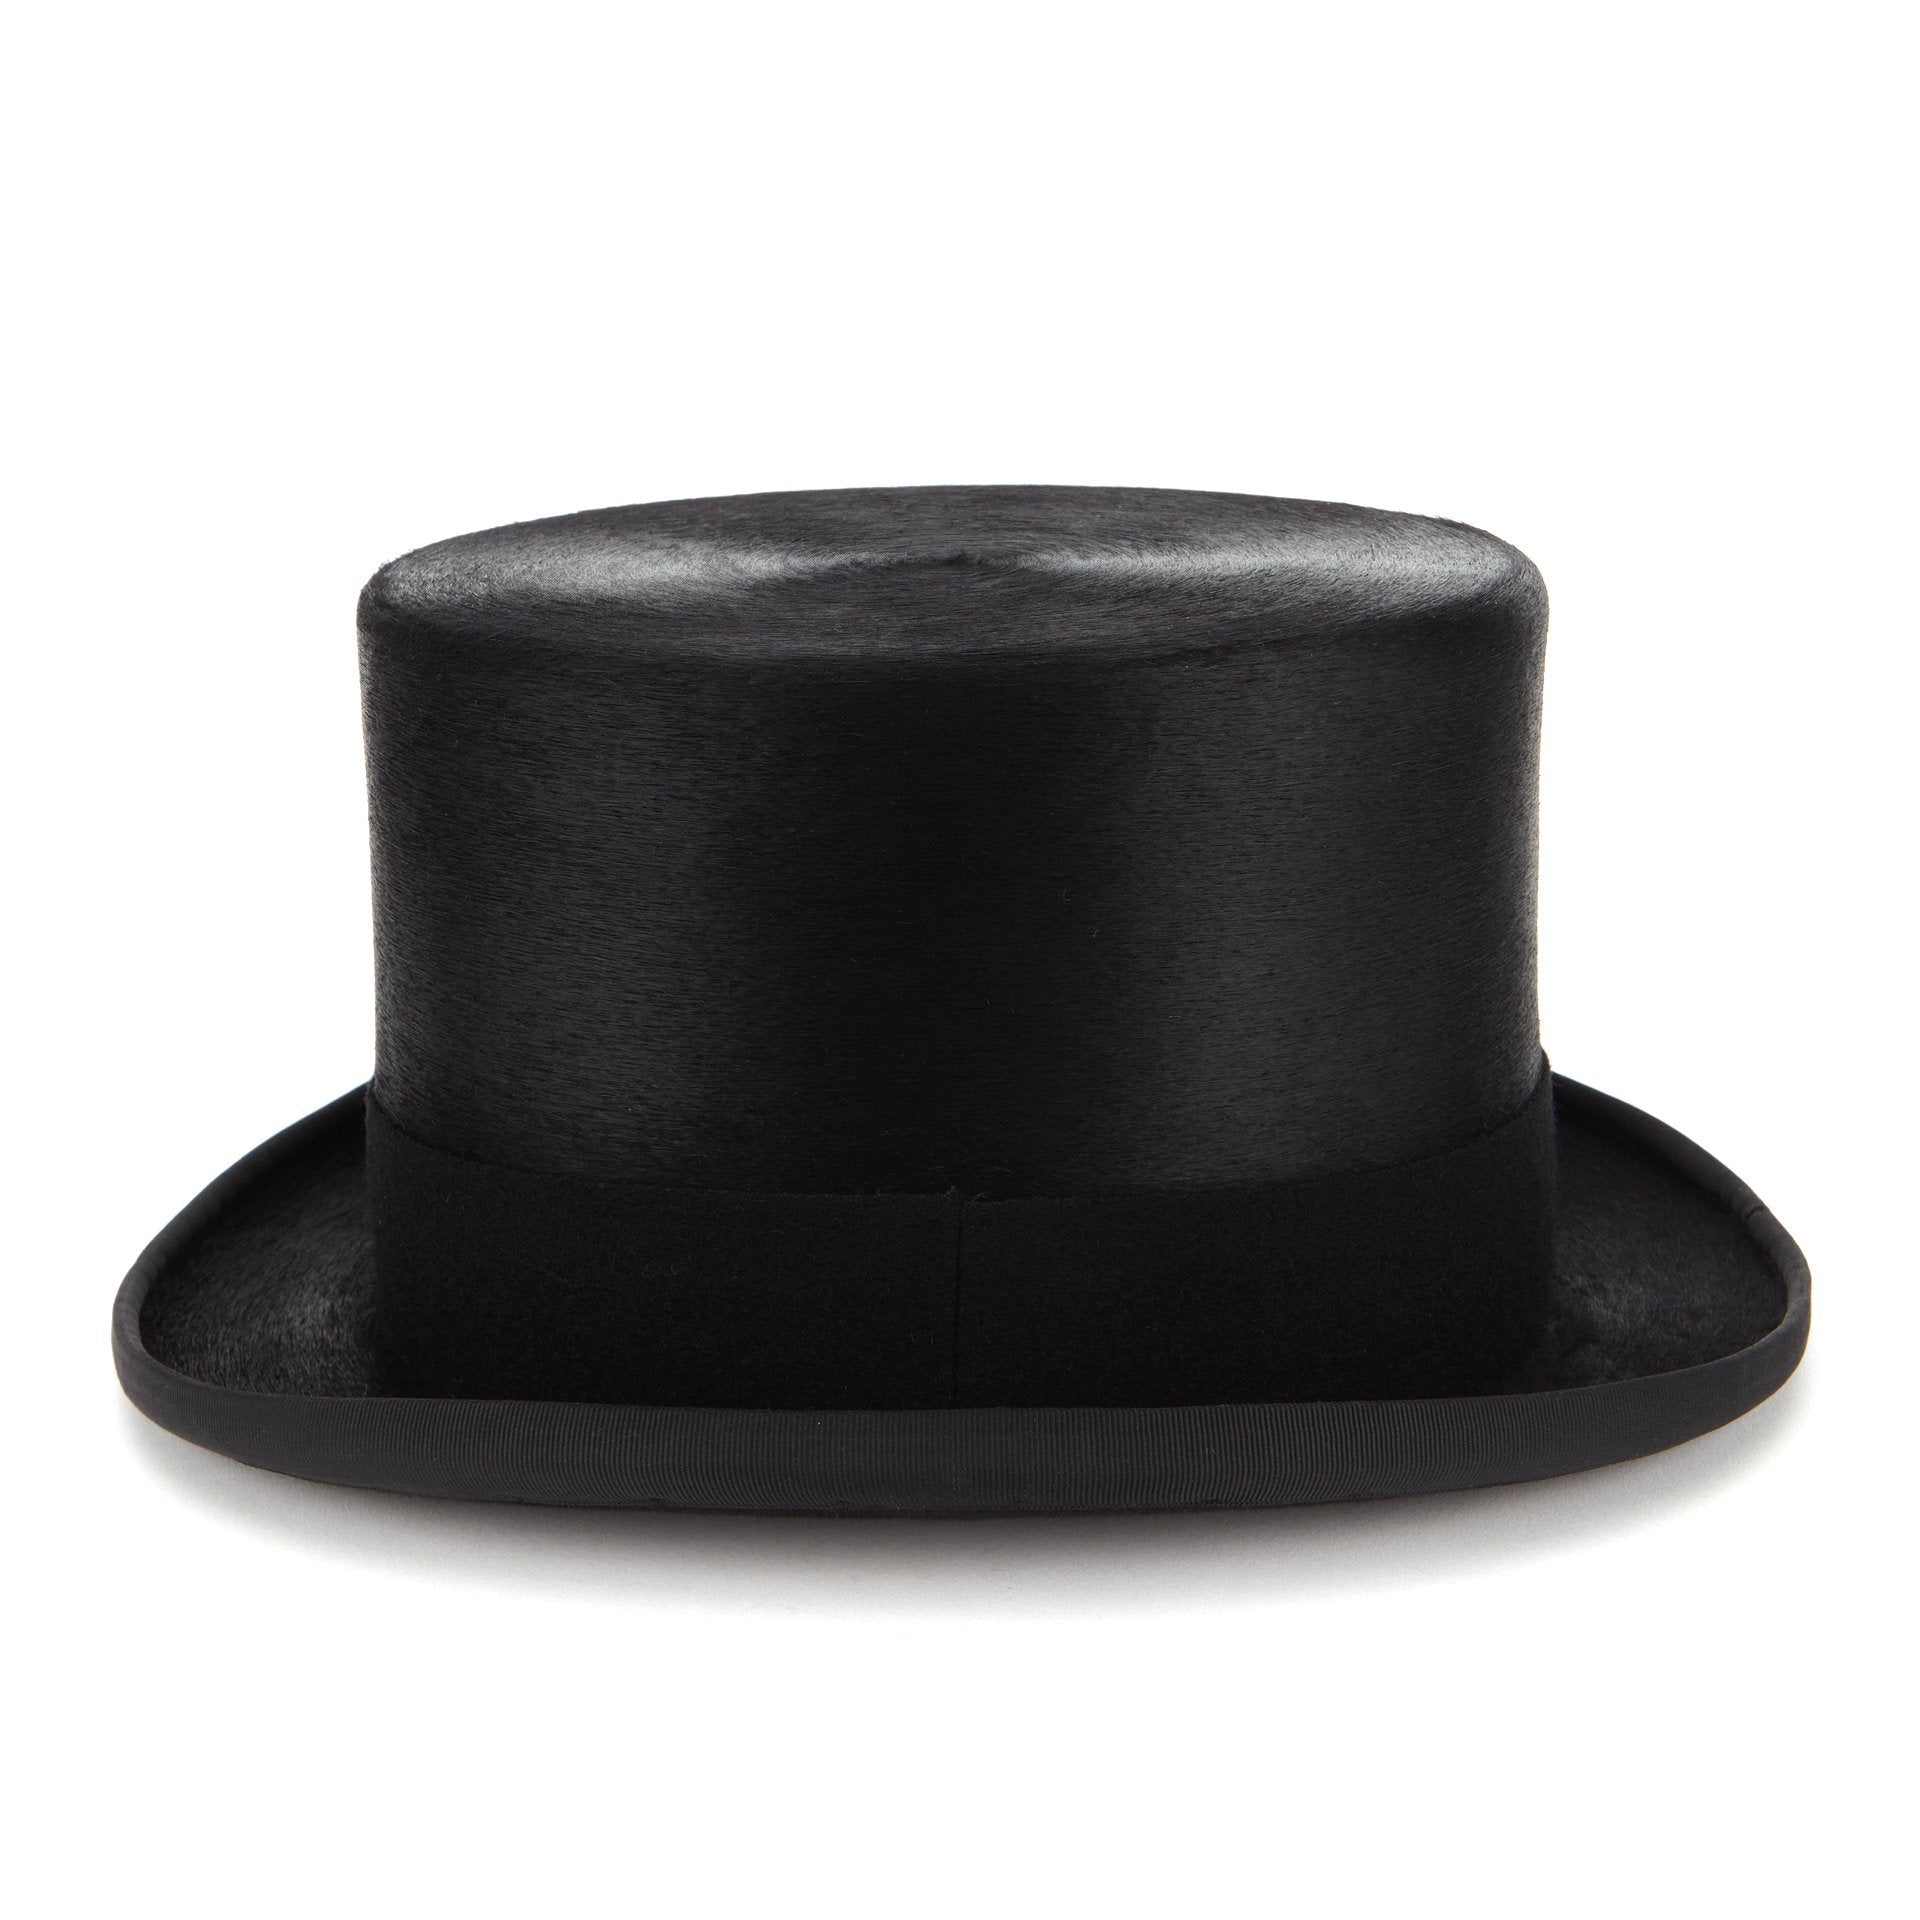 Town shell top hat - Top Hats & Cokes (Bowler hats) - Lock & Co. Hatters London UK